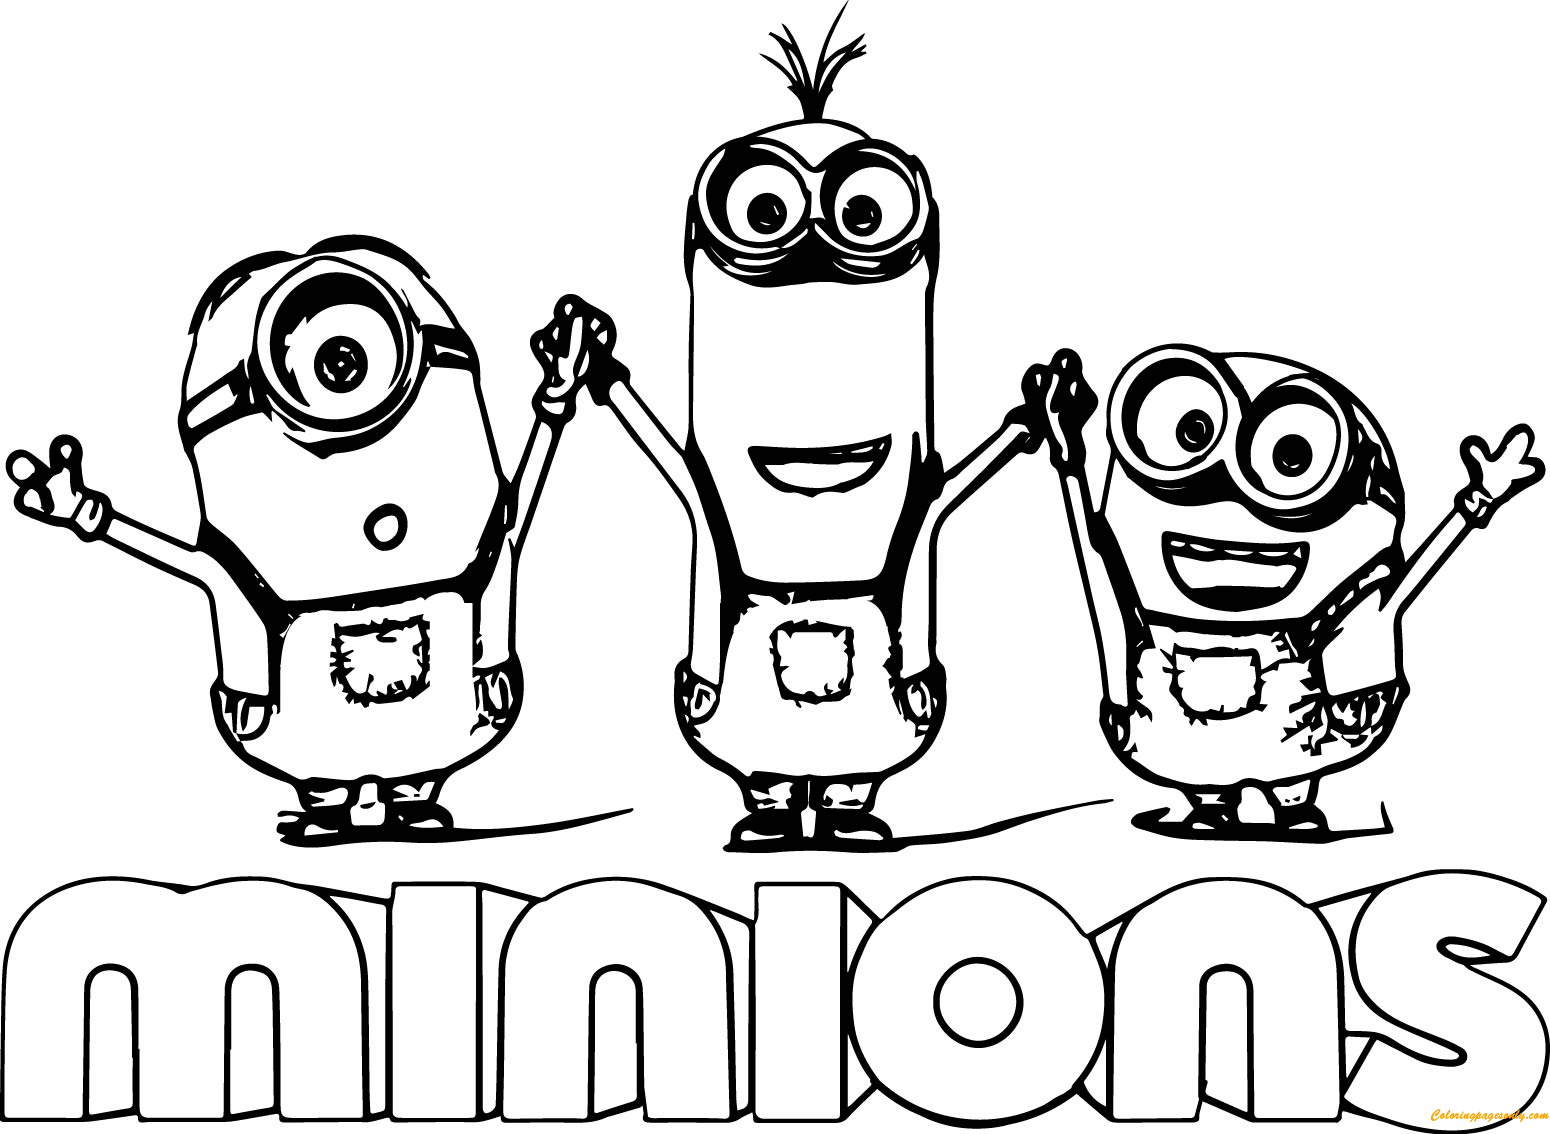 Minion Kevin With Two Minions Coloring Page Free Coloring Pages